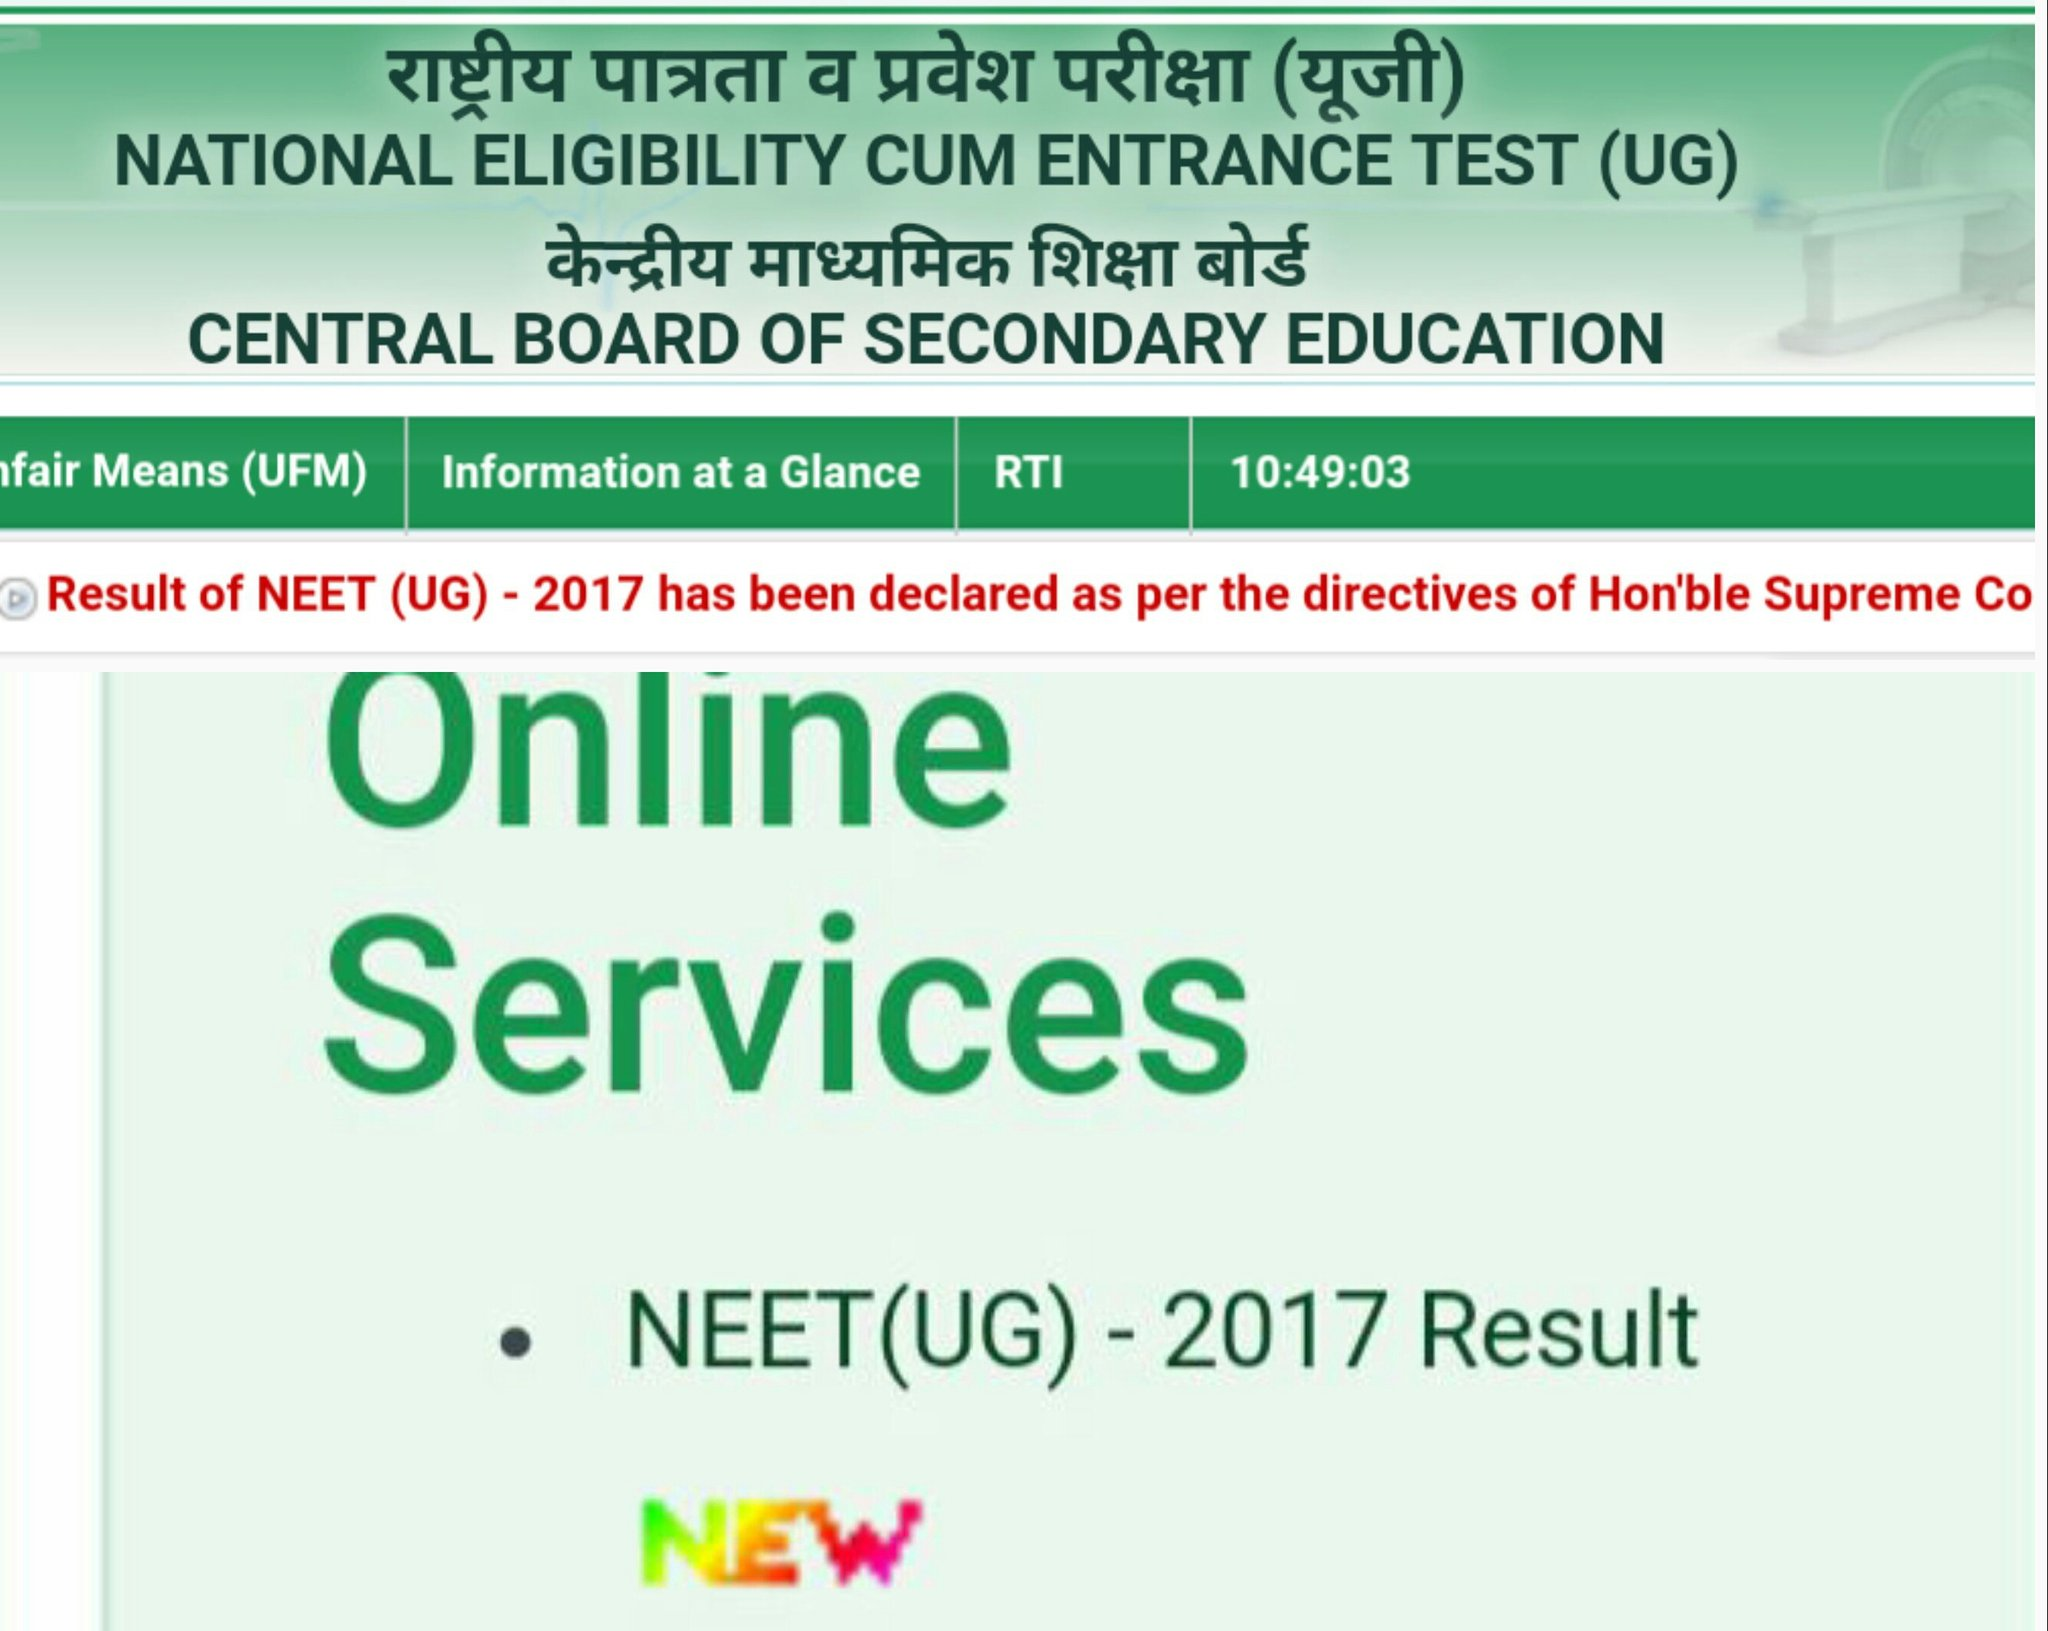 CBSE NEET Result 2017 Announced; Check Now At Cbseresults.nic.in, Cbseneet